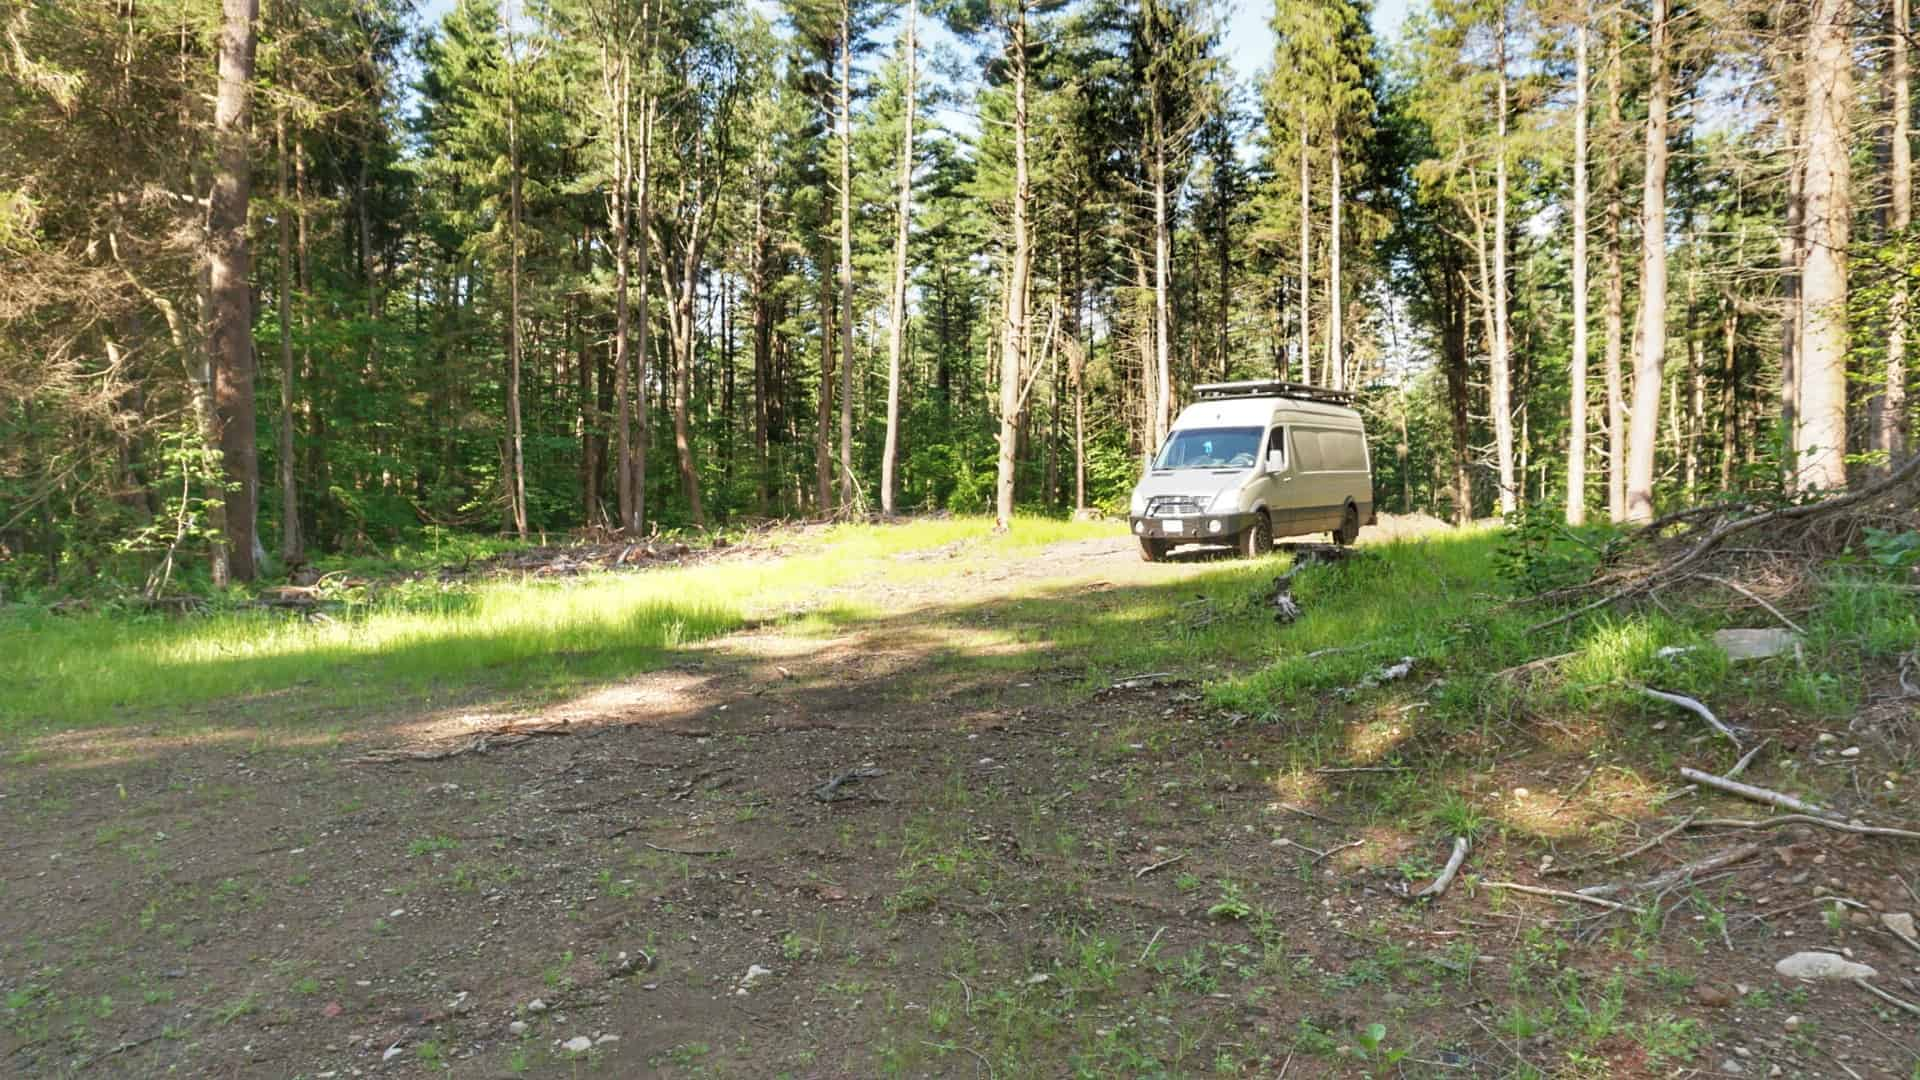 Winona State Forest Primitive Camping